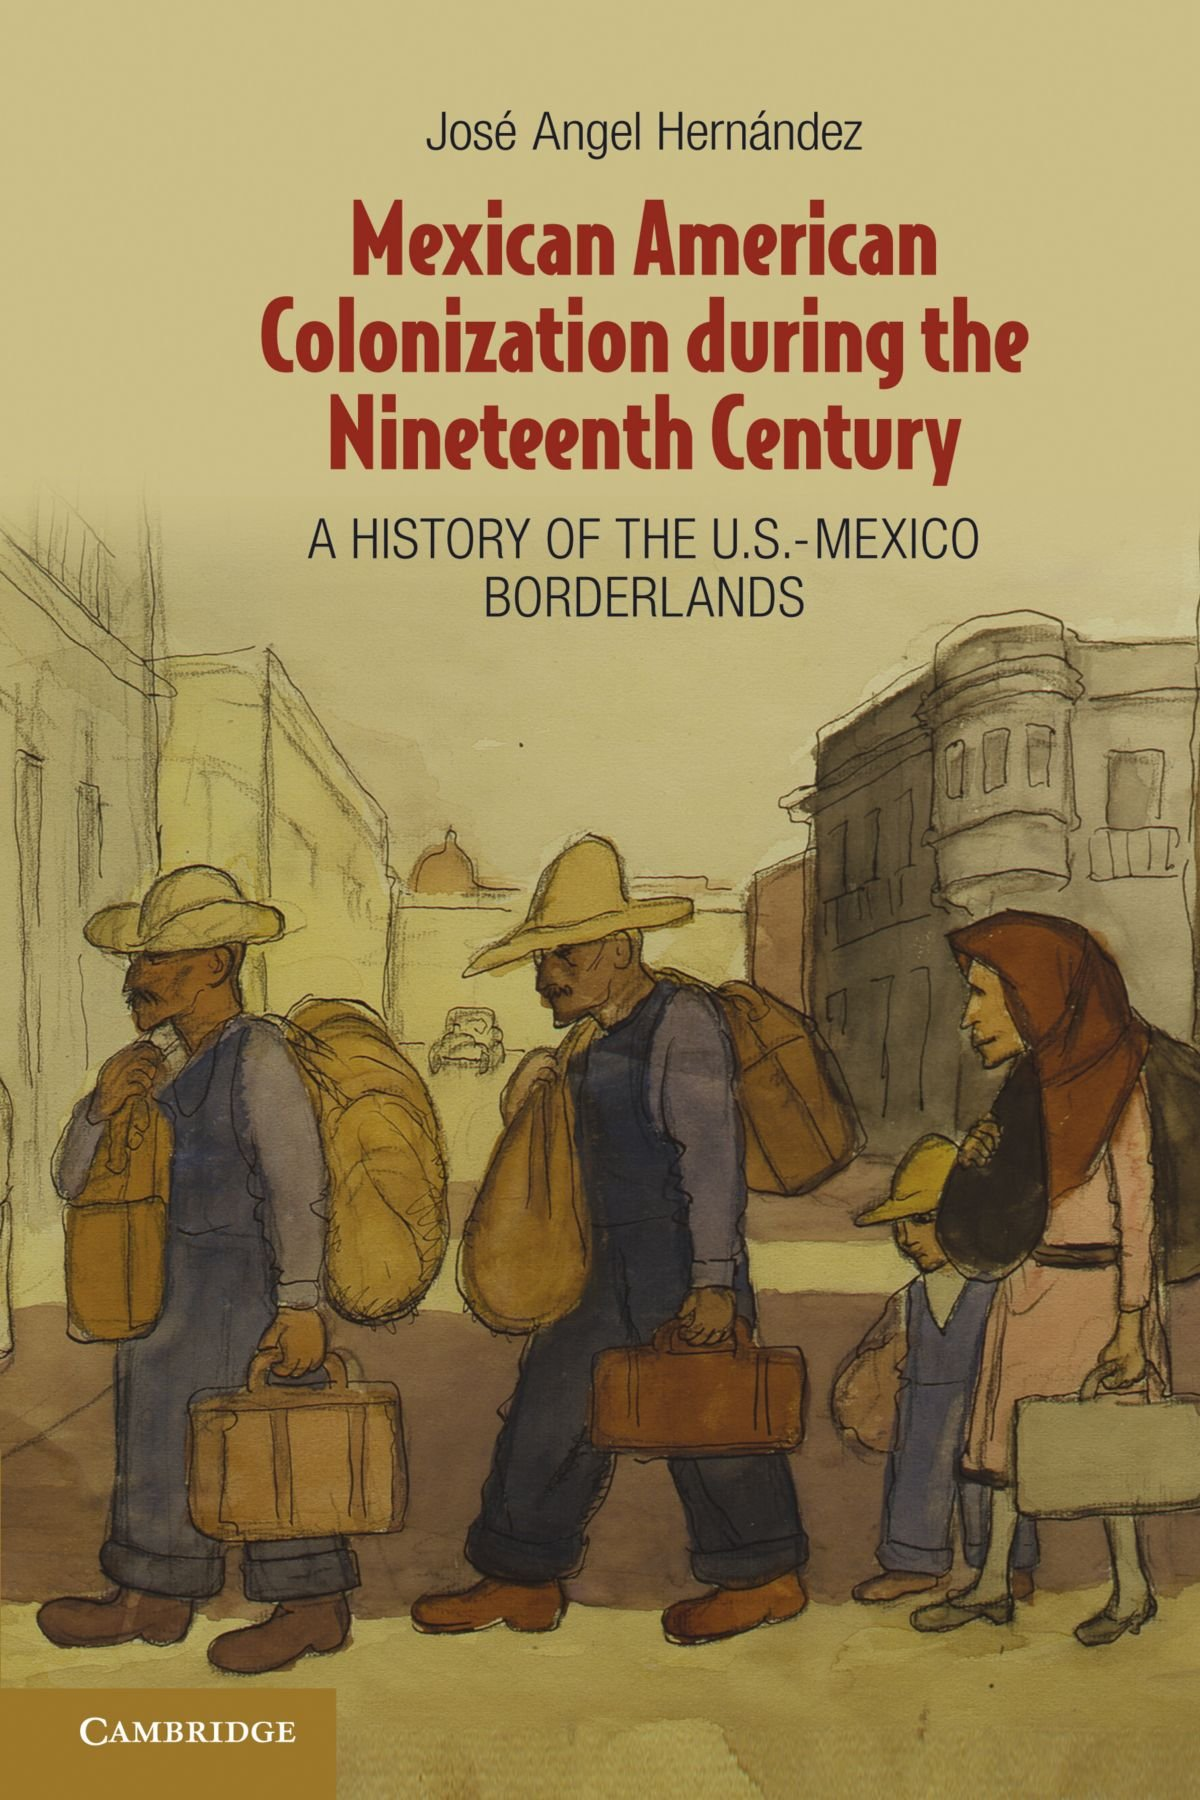 Mexican American Colonization during the Nineteenth Century: A History of the U.S.-Mexico Borderlands ebook